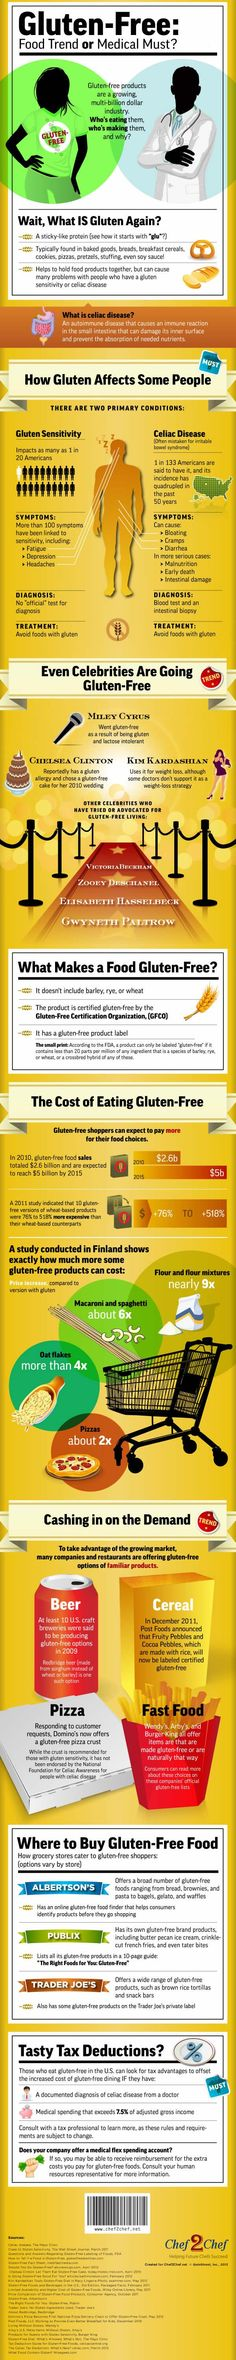 Gluten free diets seem to be a growing trend.  Are they really all they are cracked up to be?  Check out this great infographic and decide for yourself.    Infographic: What you want to know about eating gluten-free